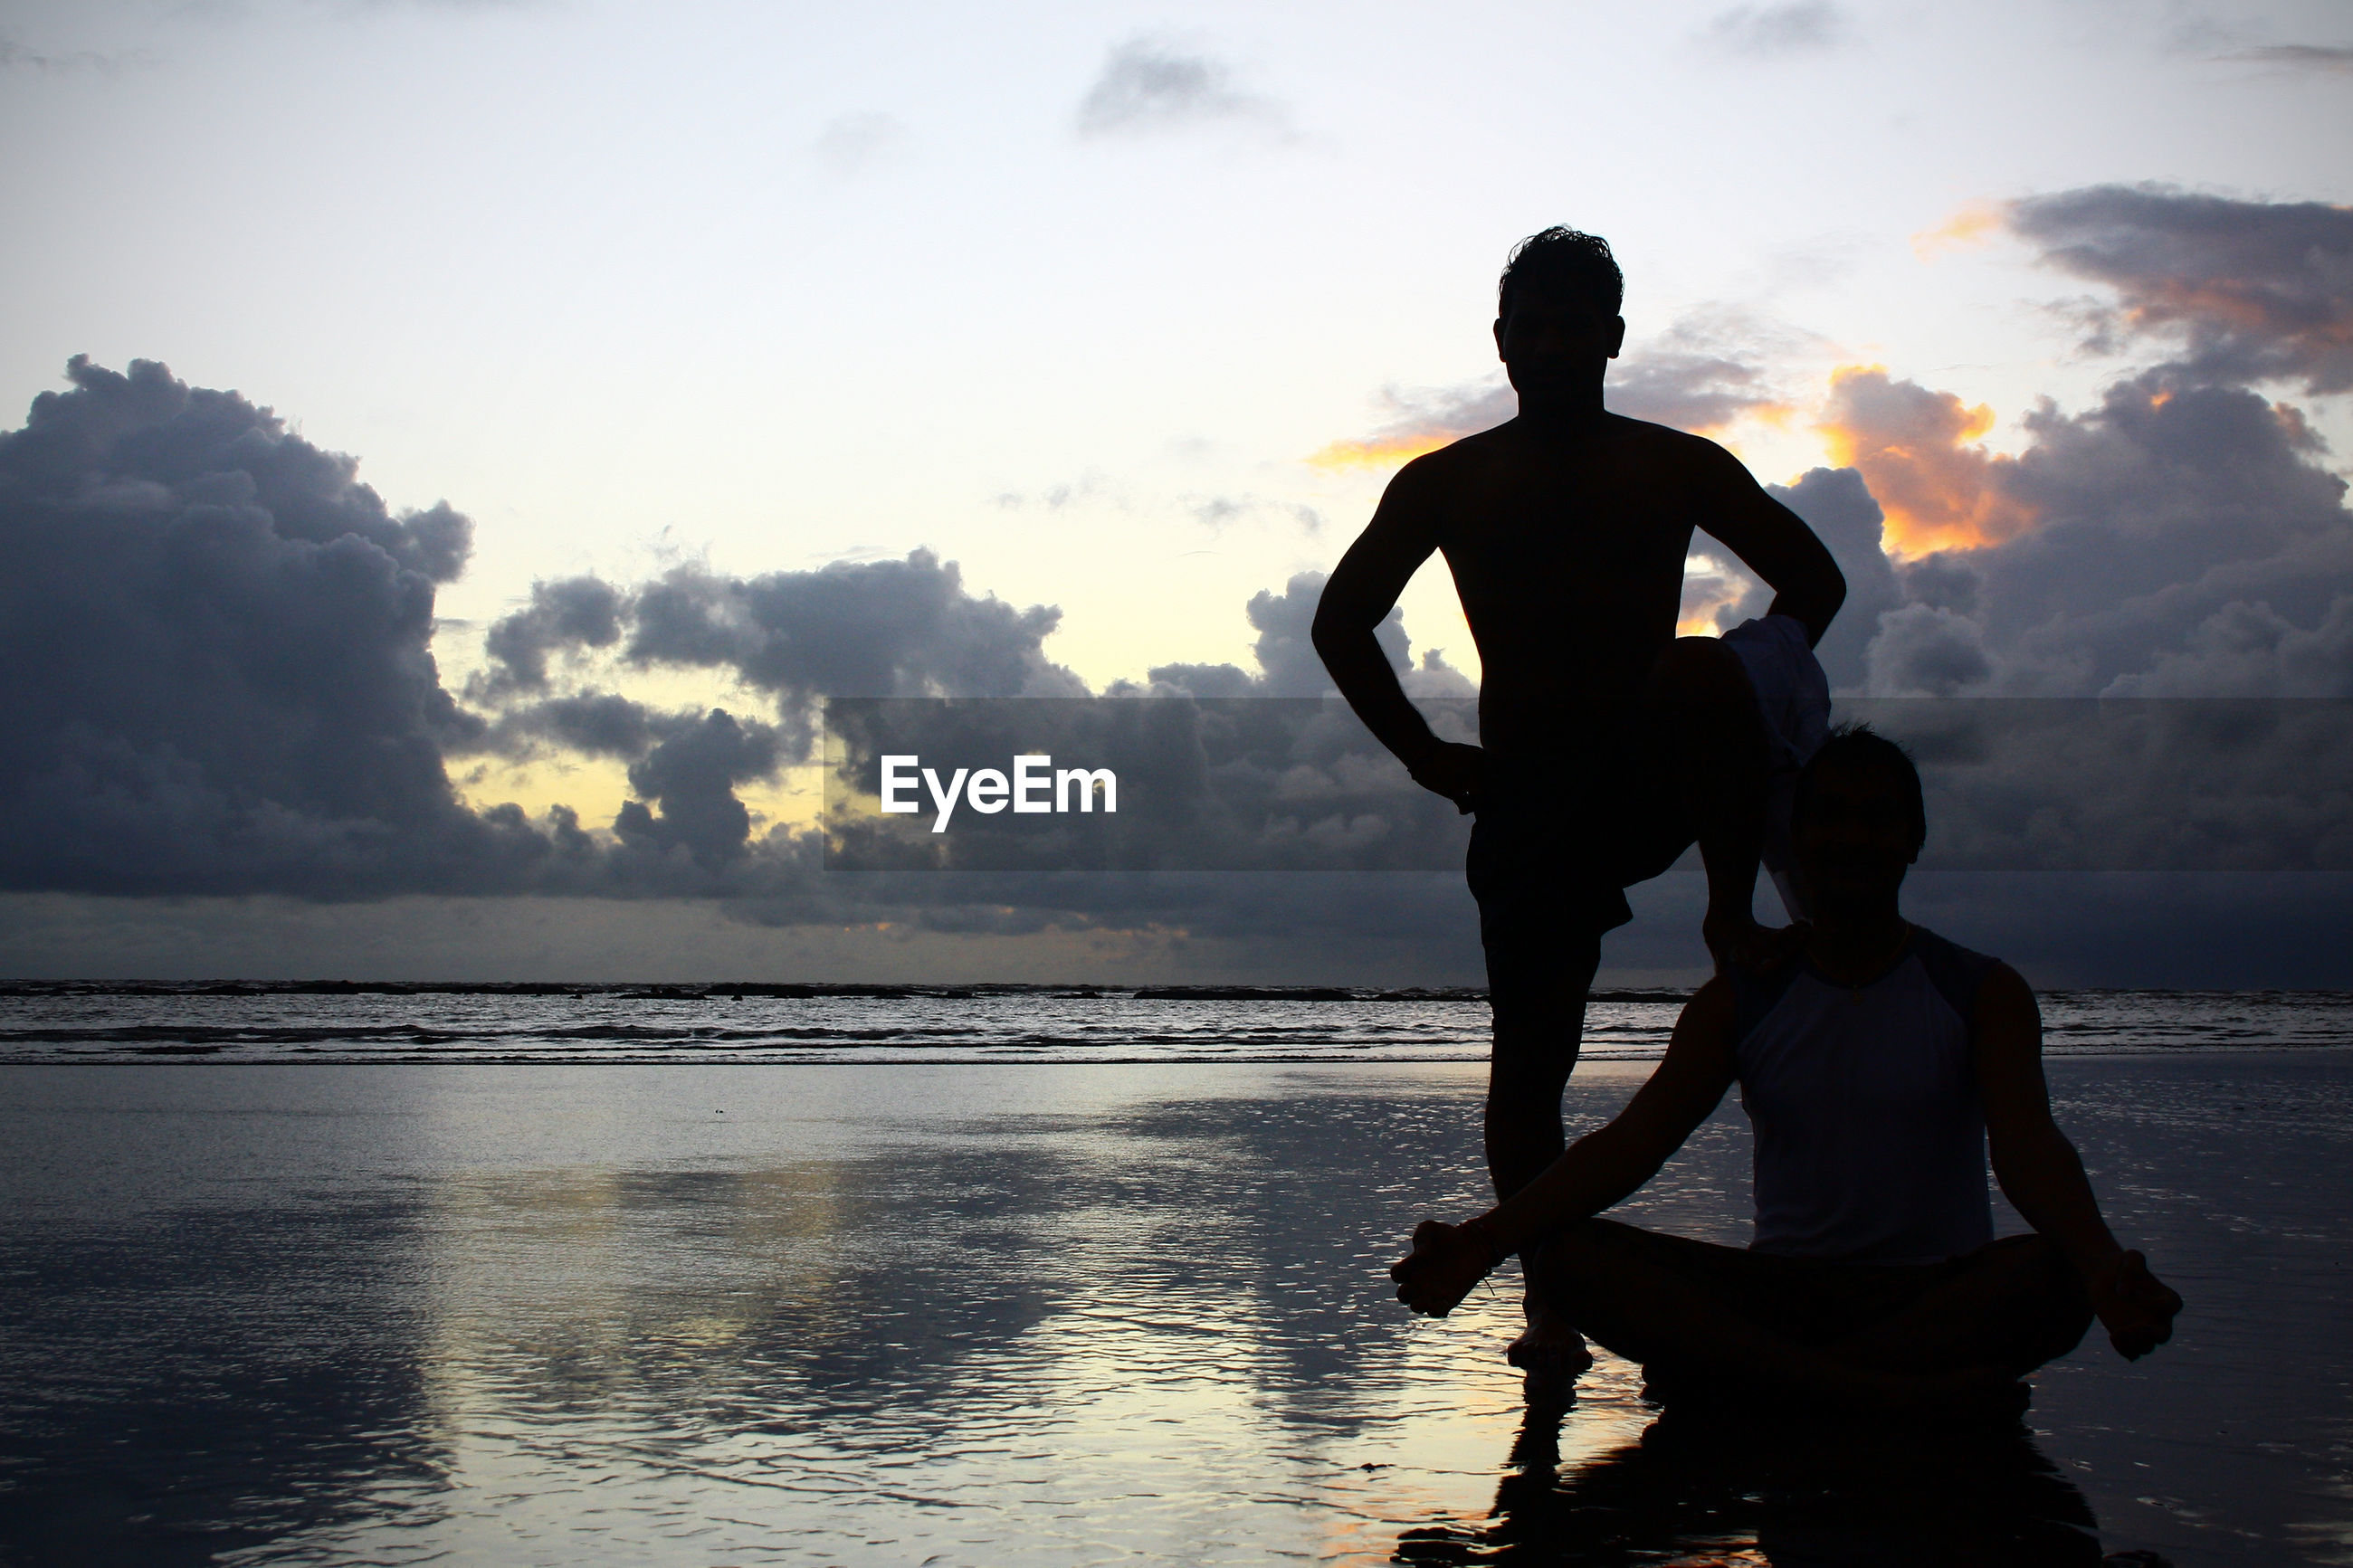 Silhouette men on shore at beach against cloudy sky during sunset